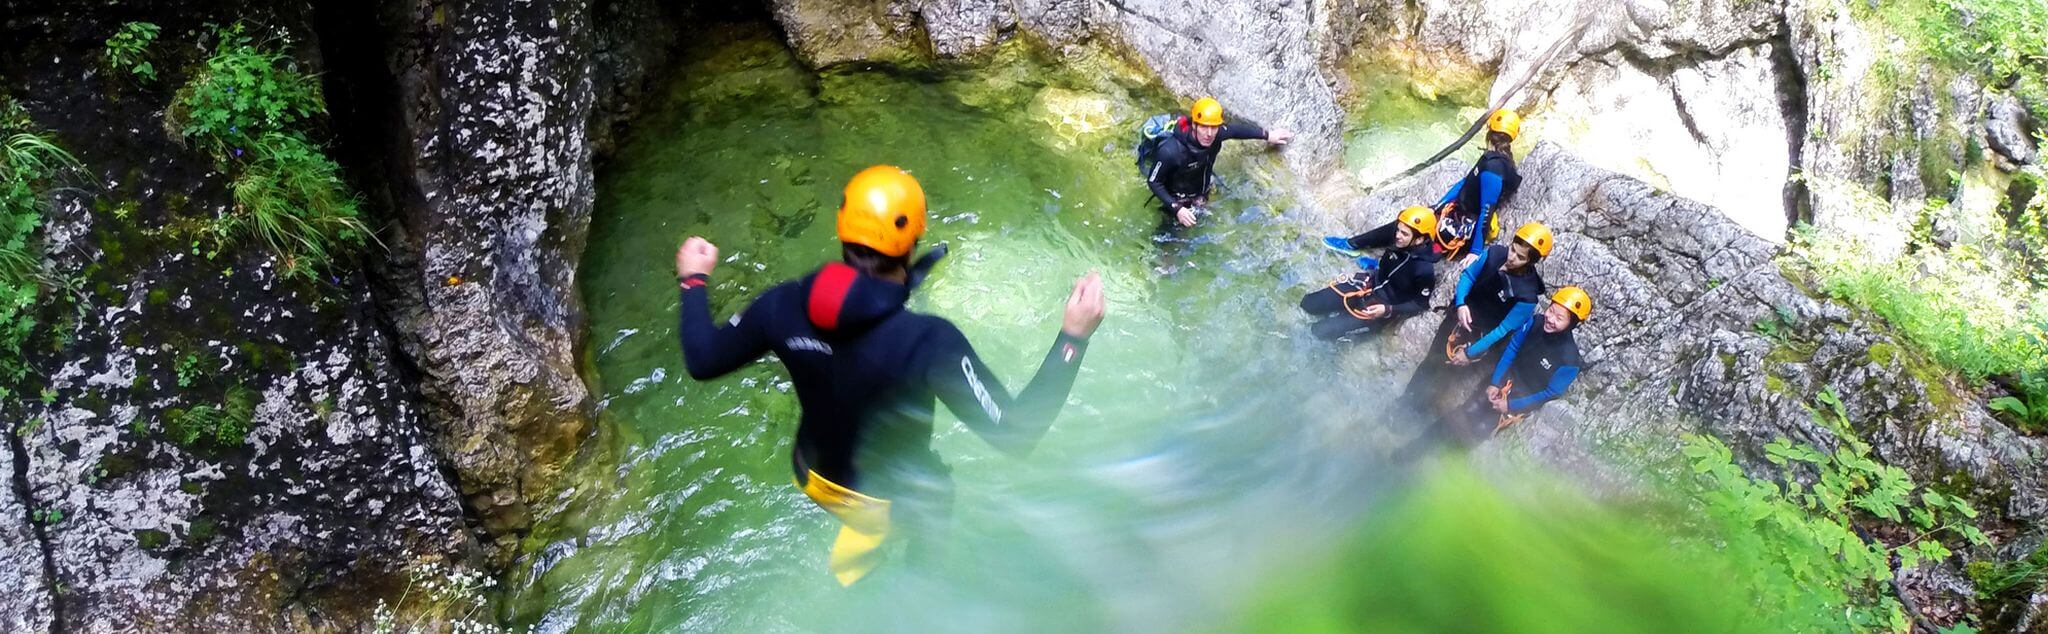 Canyoning in Espinama